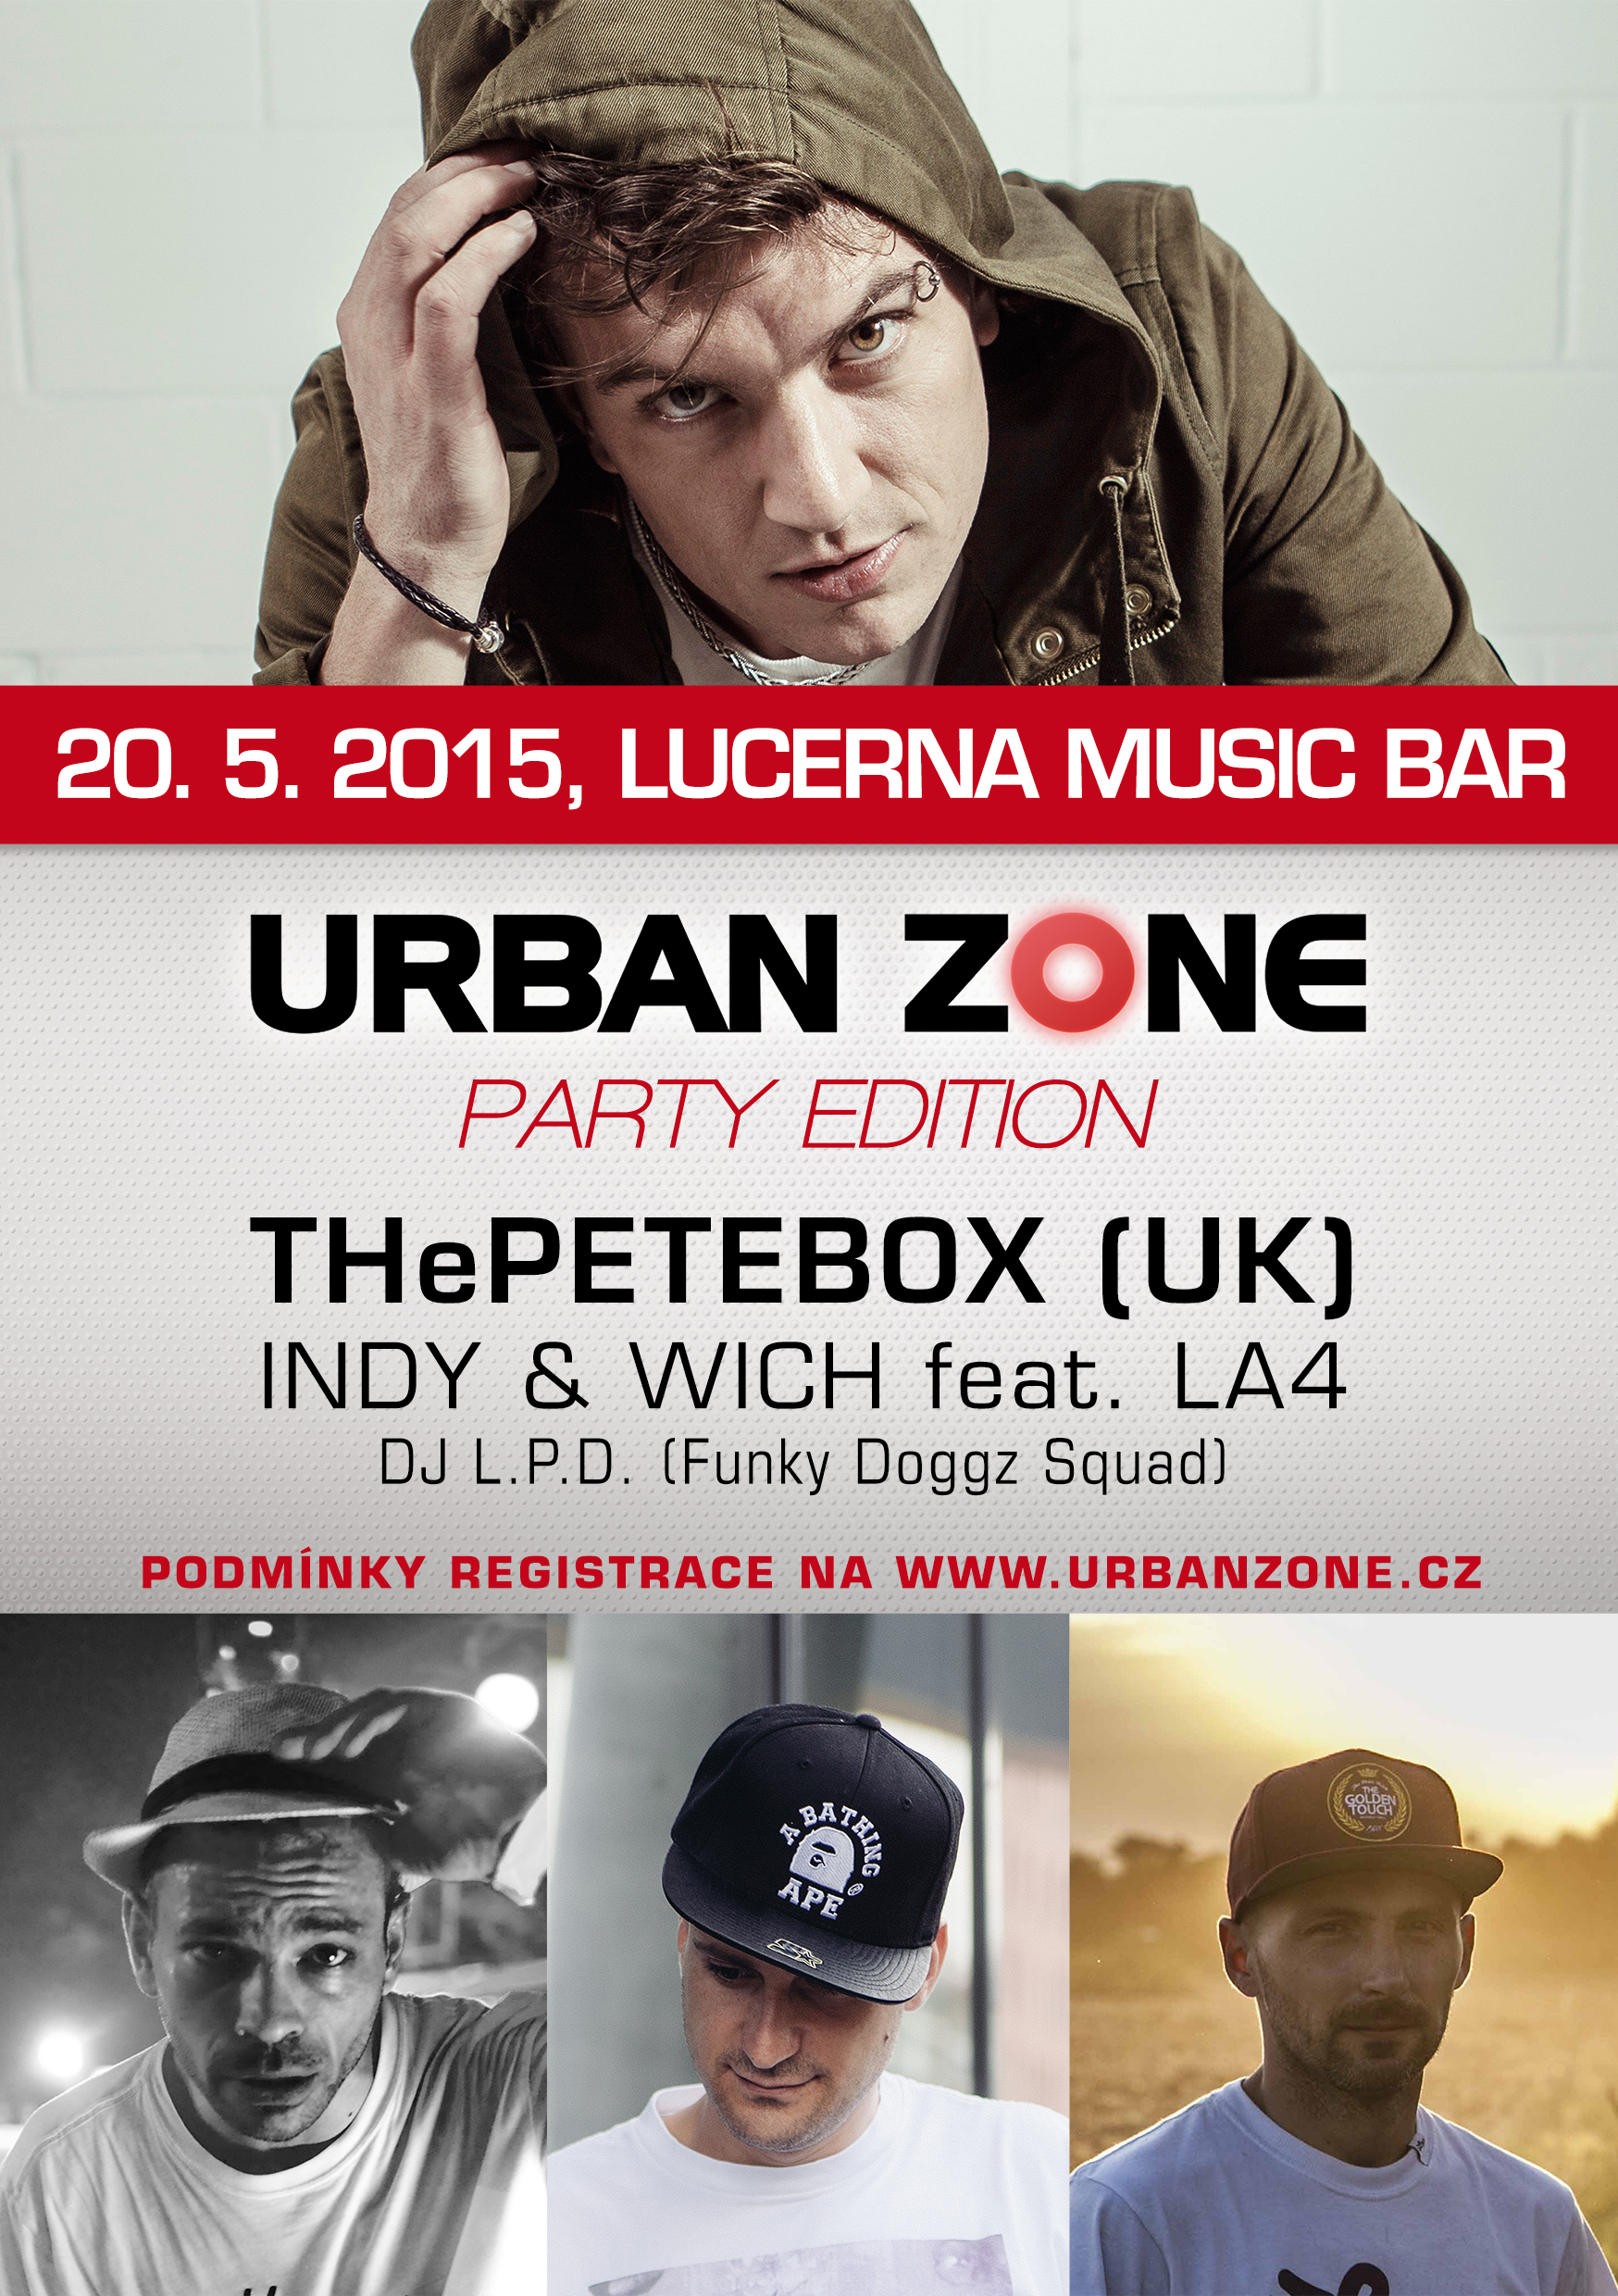 Urban Zone Party Edition: hiphopová klasika s Indy & Wich a beatboxová nálož od THePETEBOX